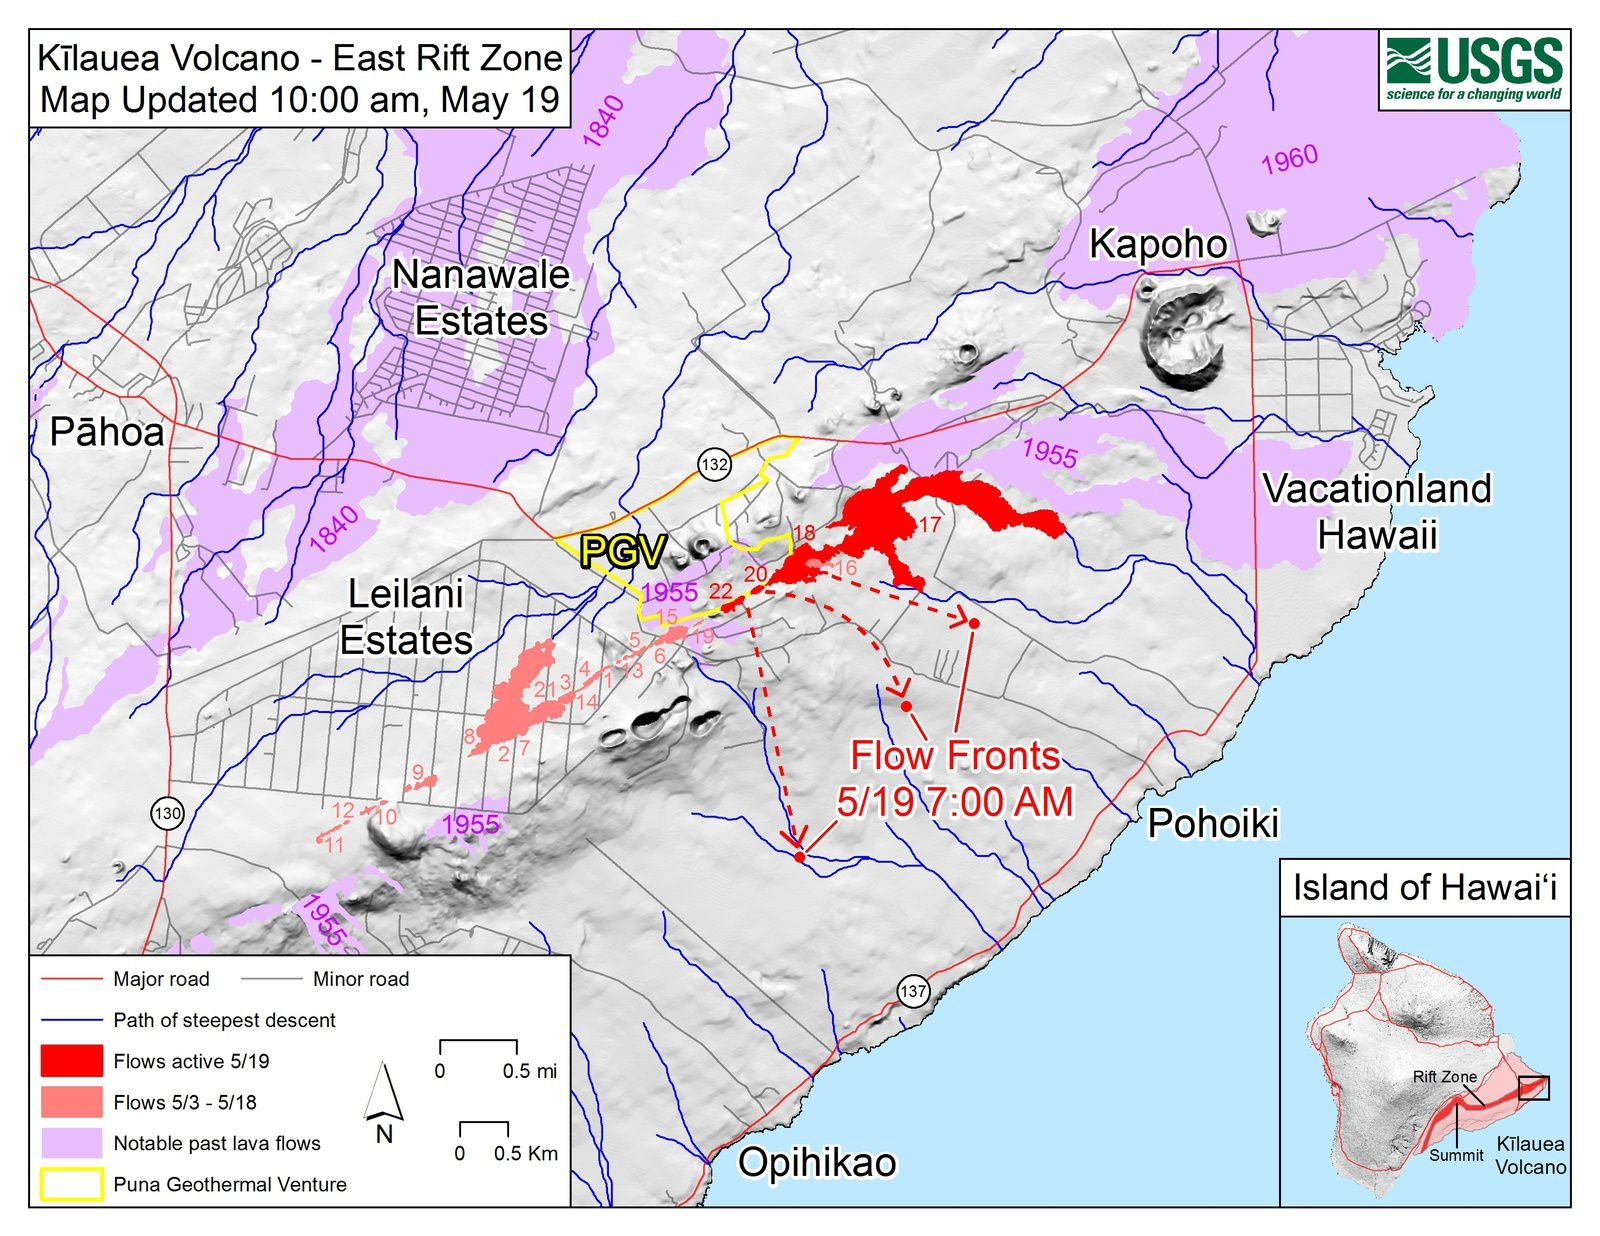 Kilauea East rift zone - maps of active flows at 19.05.2018 / 10h - Doc.USGS